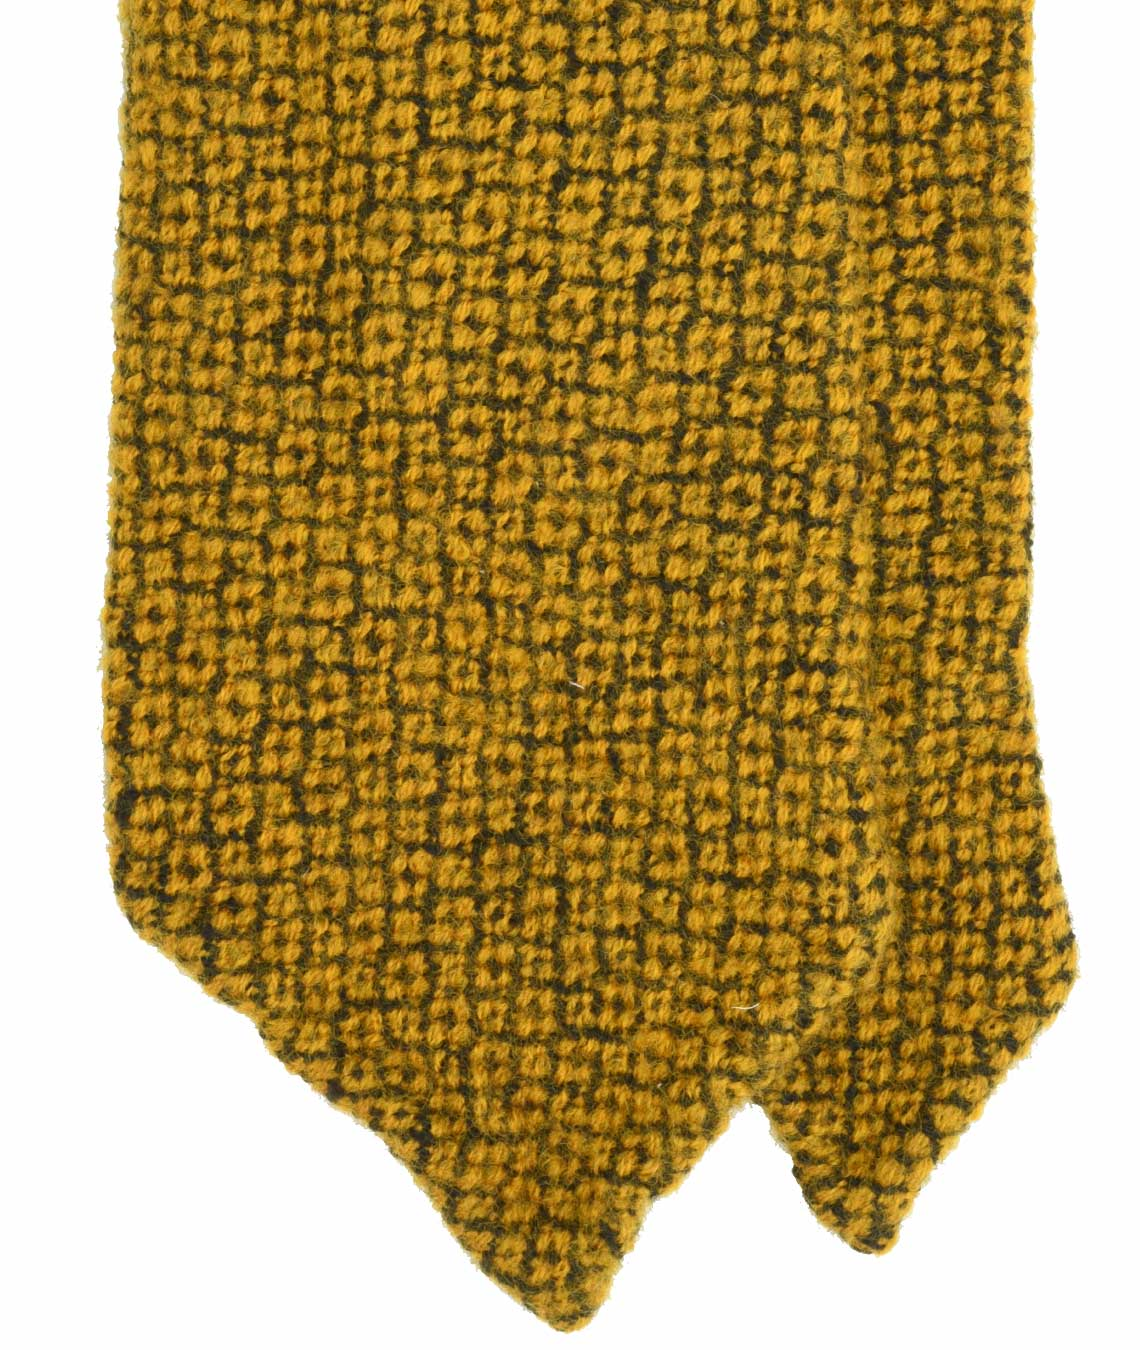 Amidé Hadelin | Fumagalli overdyed wool tie, yellow